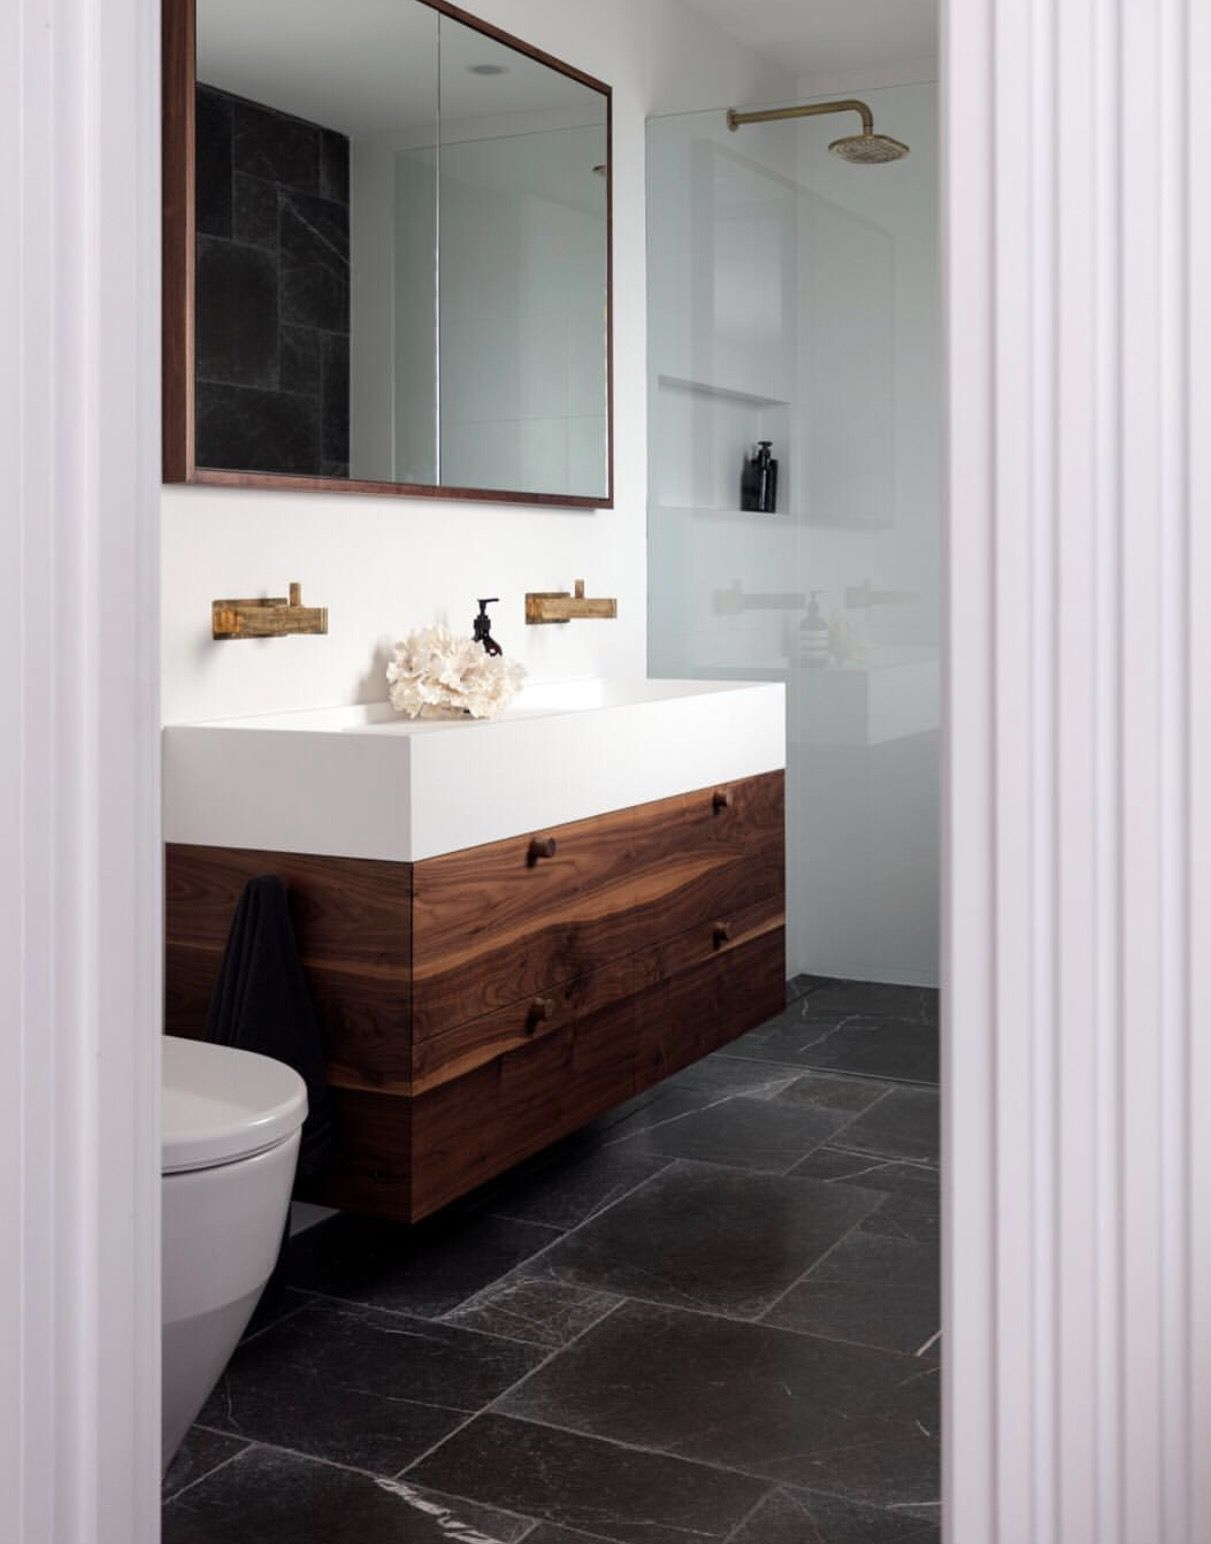 Put The Toilet Before The Vanity That Way You Could Extend The Counter Shelf Over The Tub Badezimmer Naturstein Badezimmer Rustikale Bader